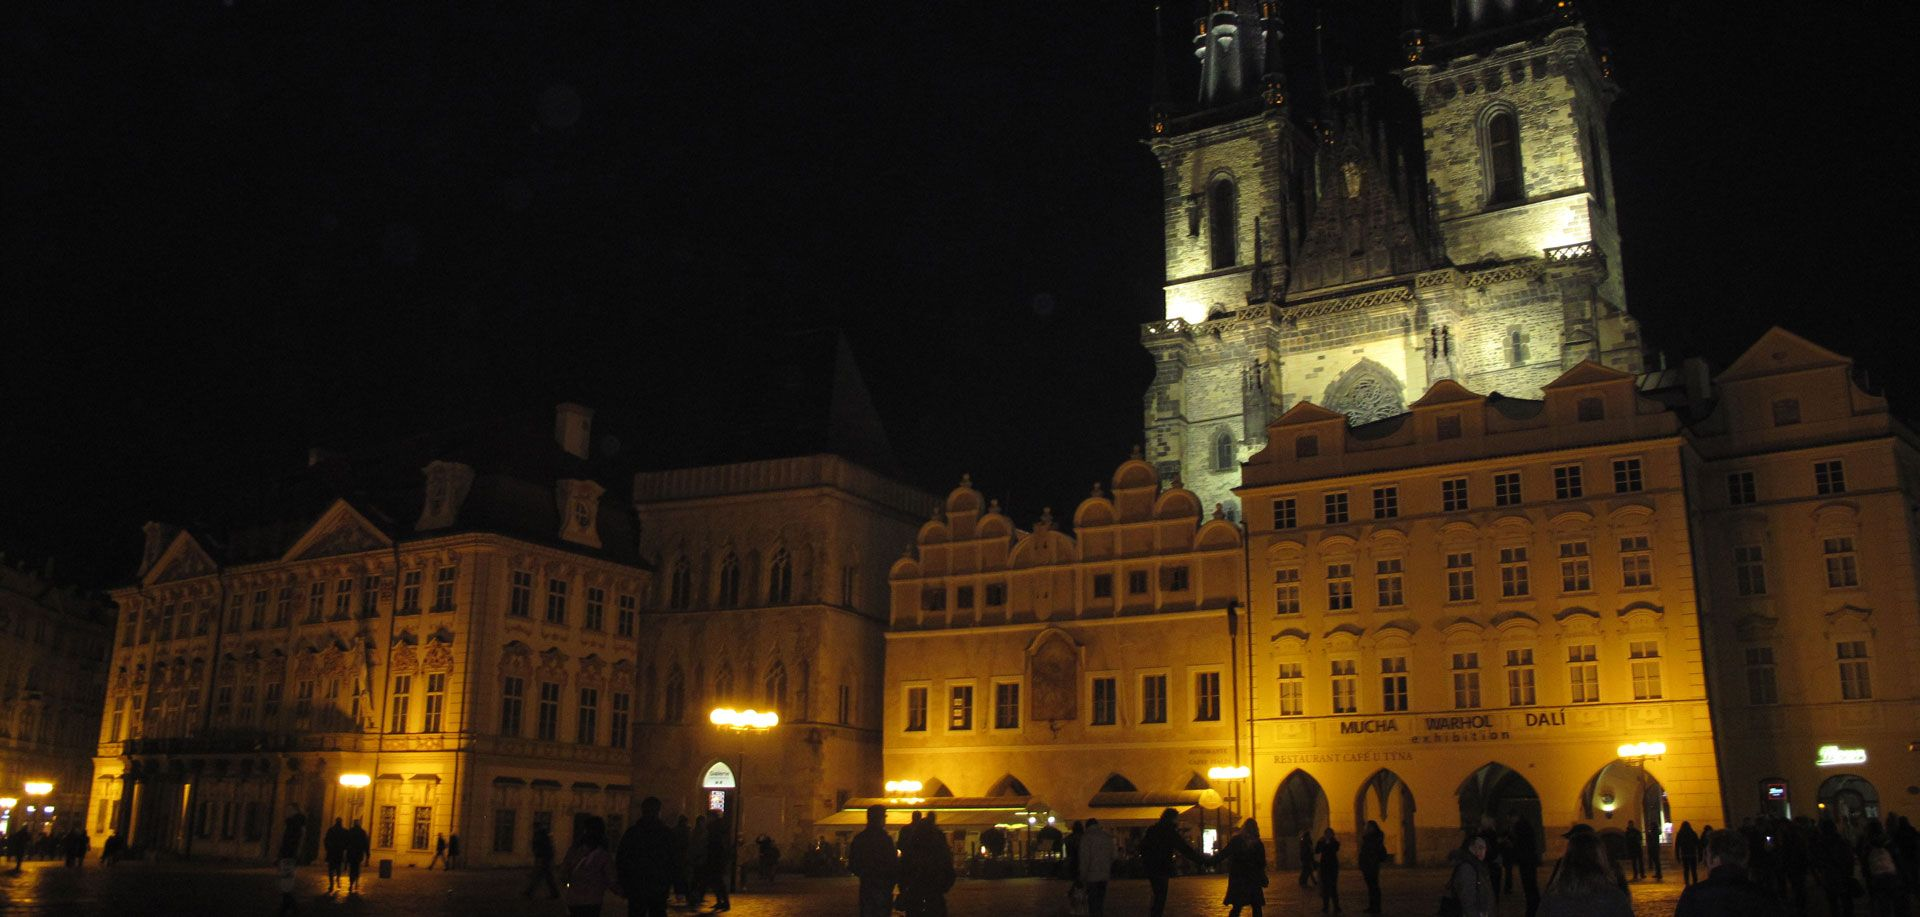 Old Town Square by night